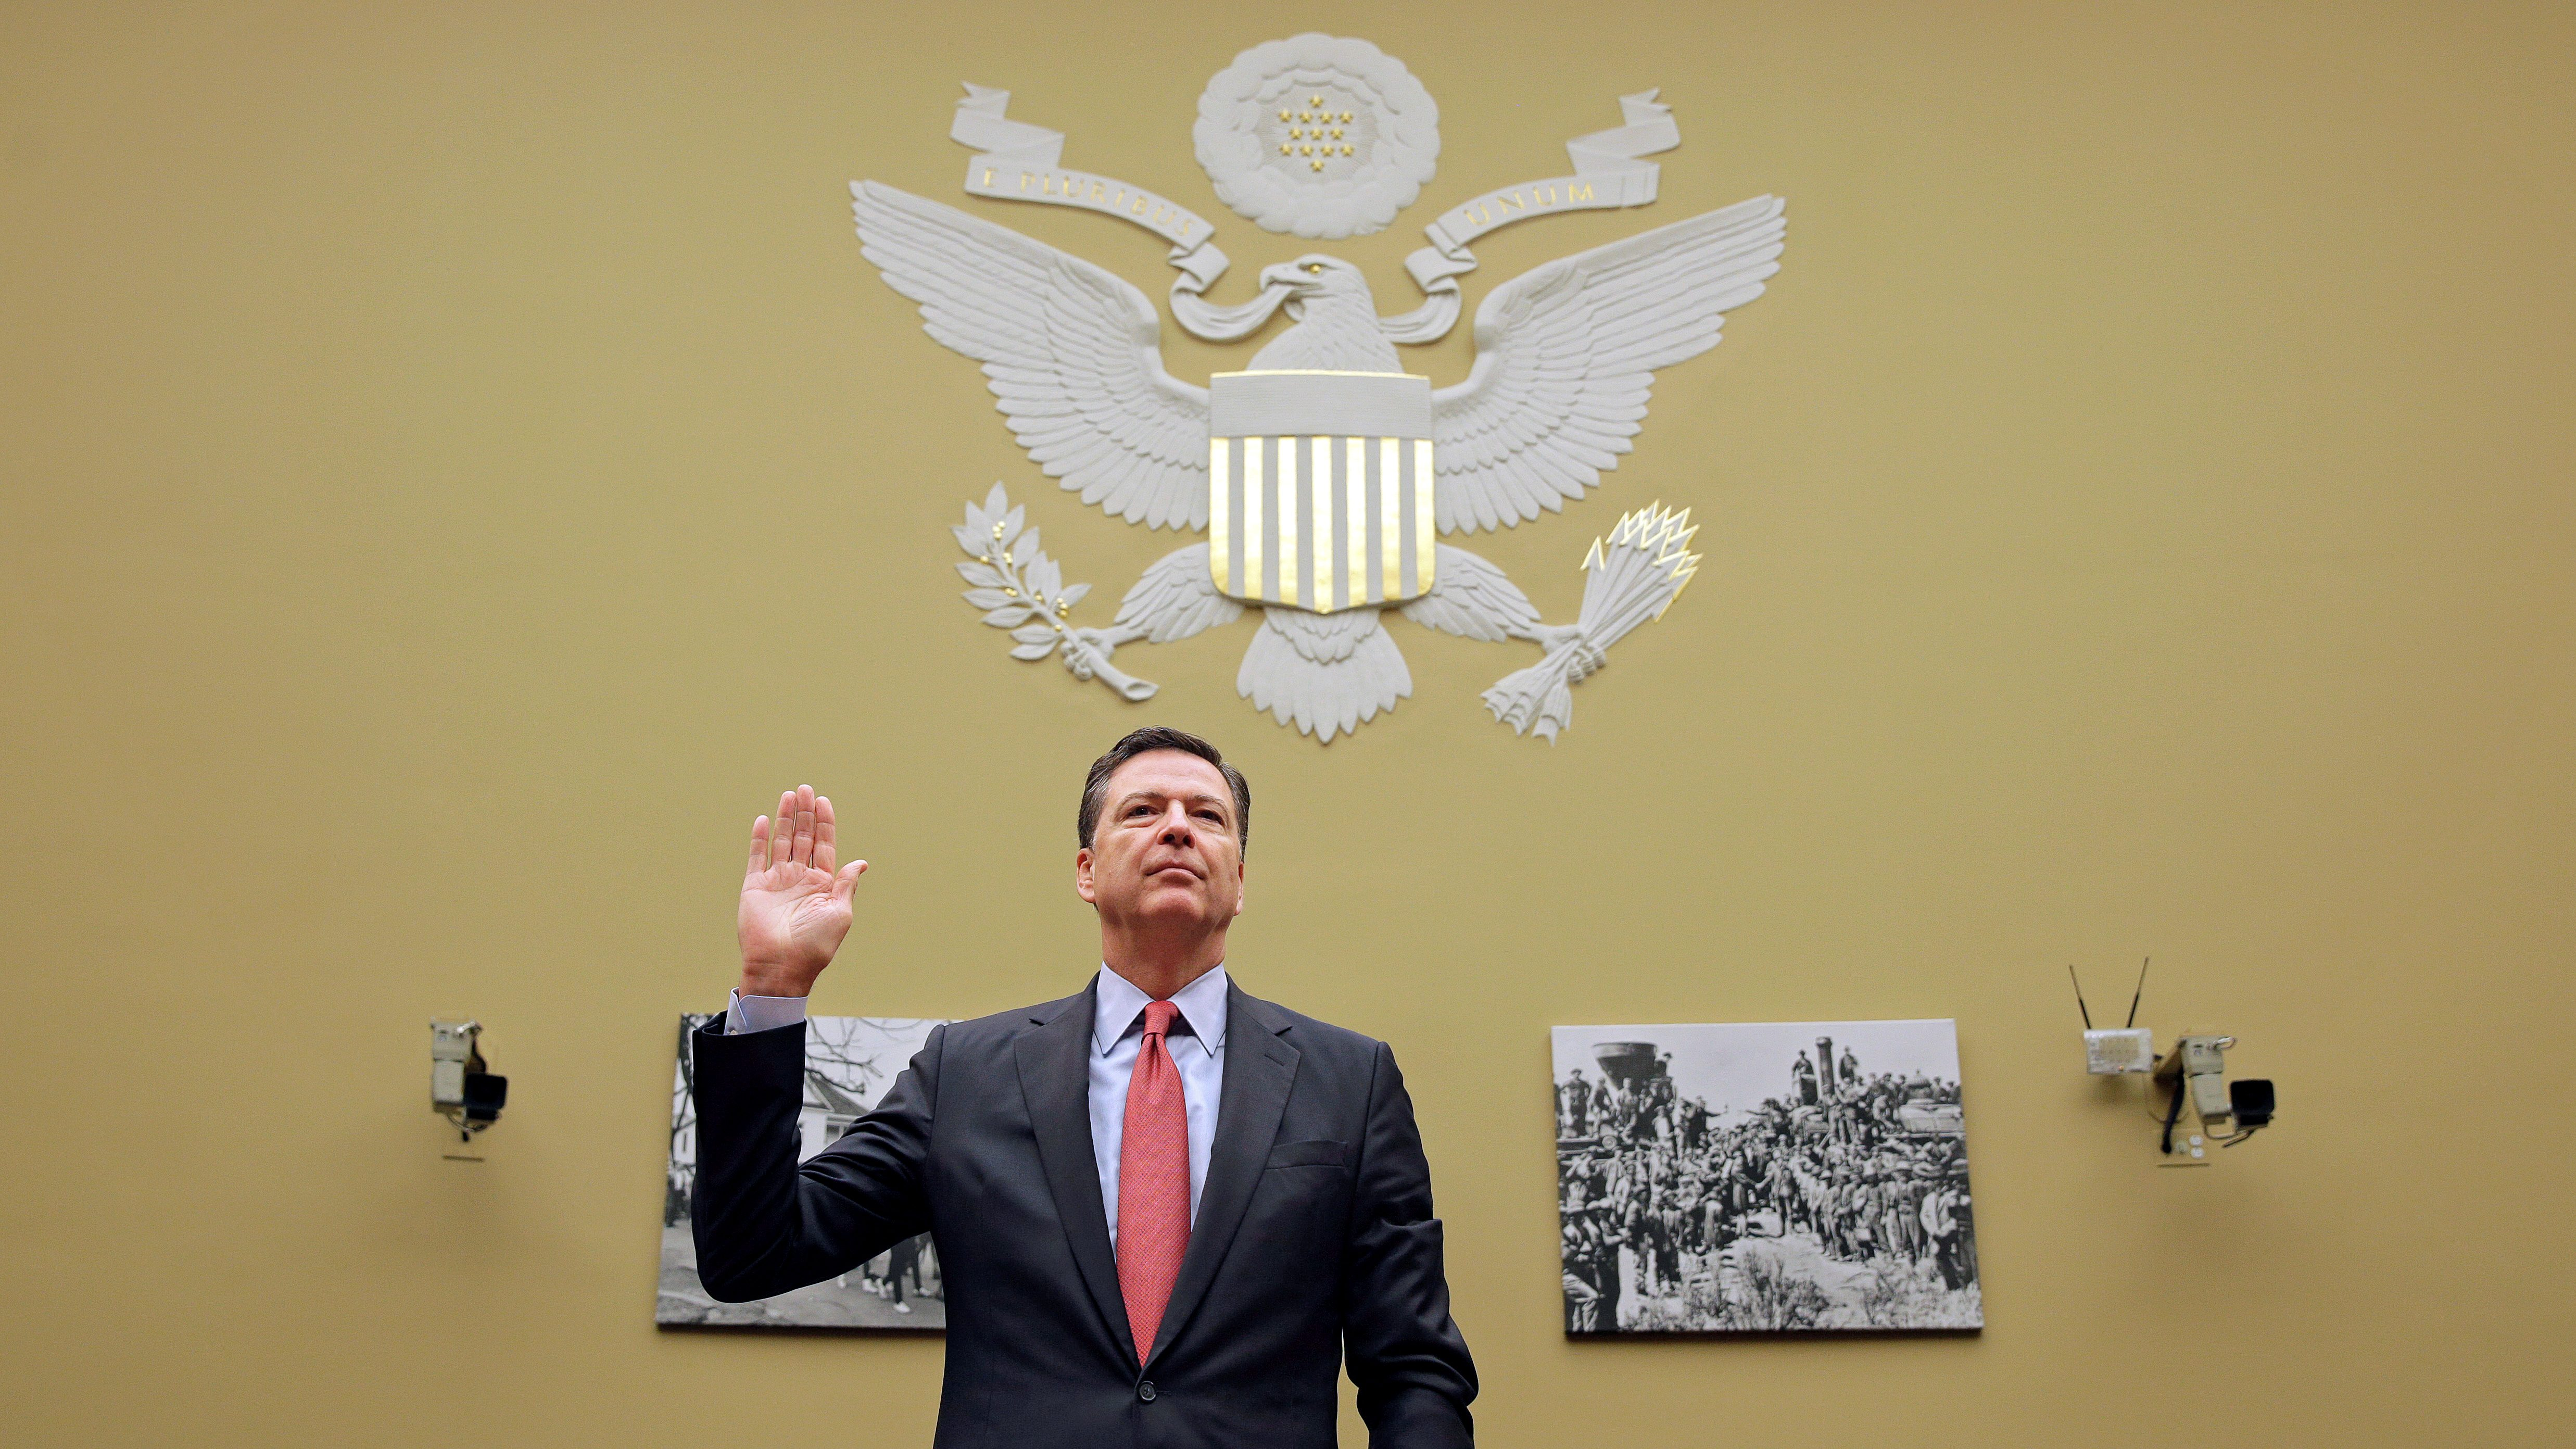 """FBI Director Comey is sworn in before testifying before a House Judiciary Committee hearing on """"Oversight of the Federal Bureau of Investigation"""" on Capitol Hill in Washington"""